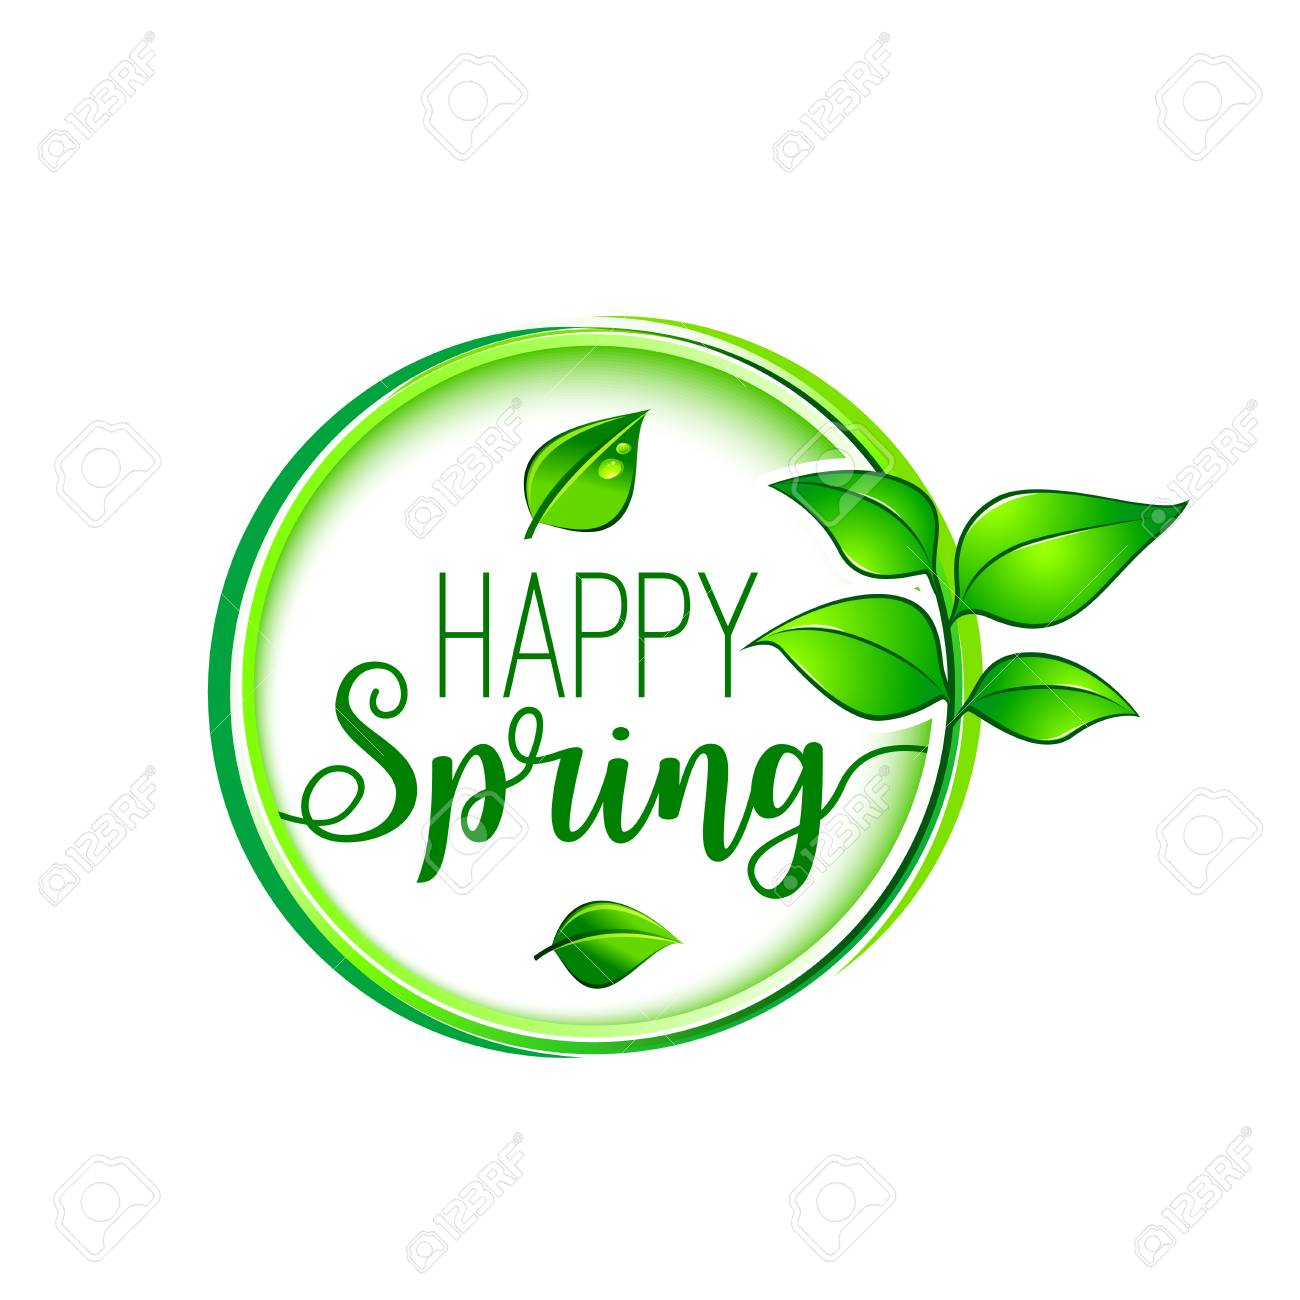 Green Leaf Happy Spring Blooming Vector Icon Royalty Free Cliparts ...